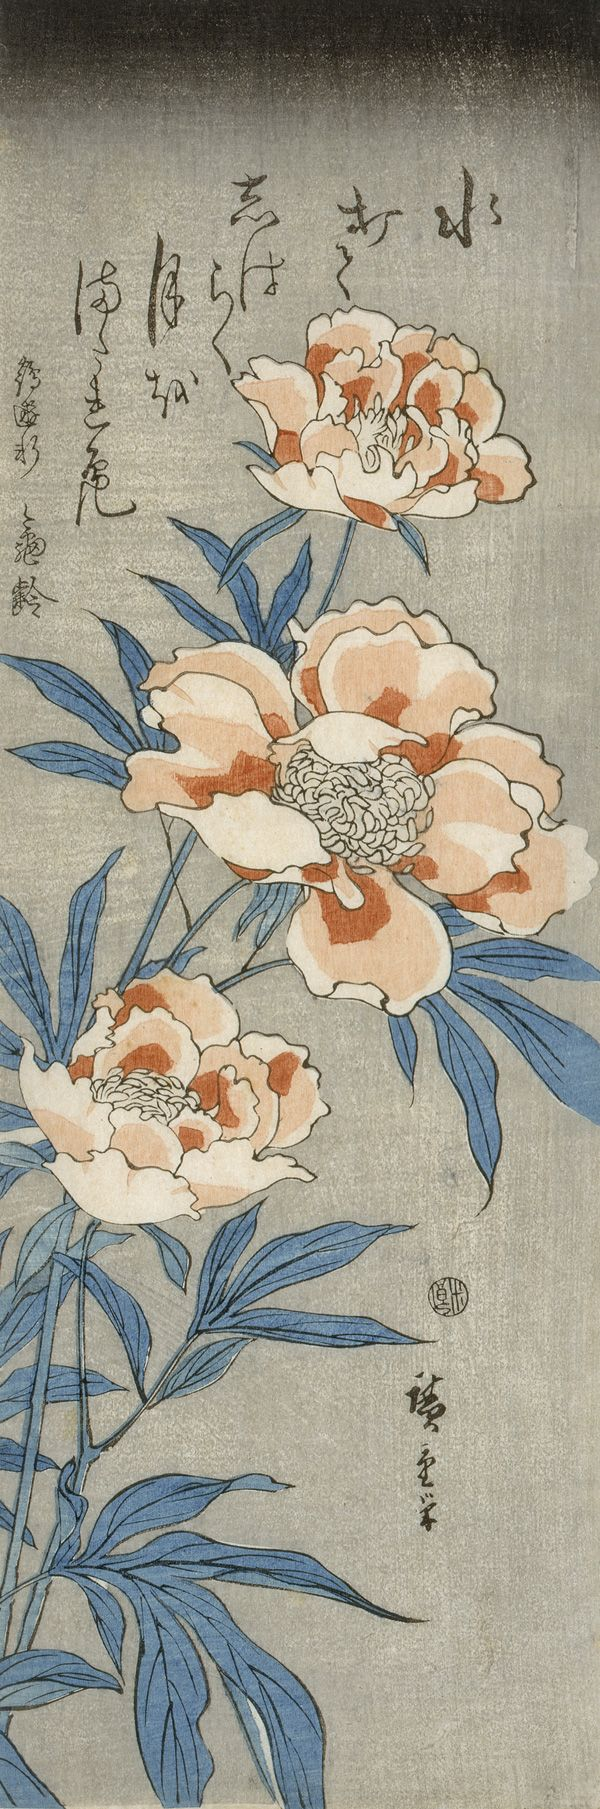 """""""Three Peonies"""" by Hiroshige (ca. 1830s). Source: The Freer and Sackler Galleries of the Smithsonian Institution.   J"""